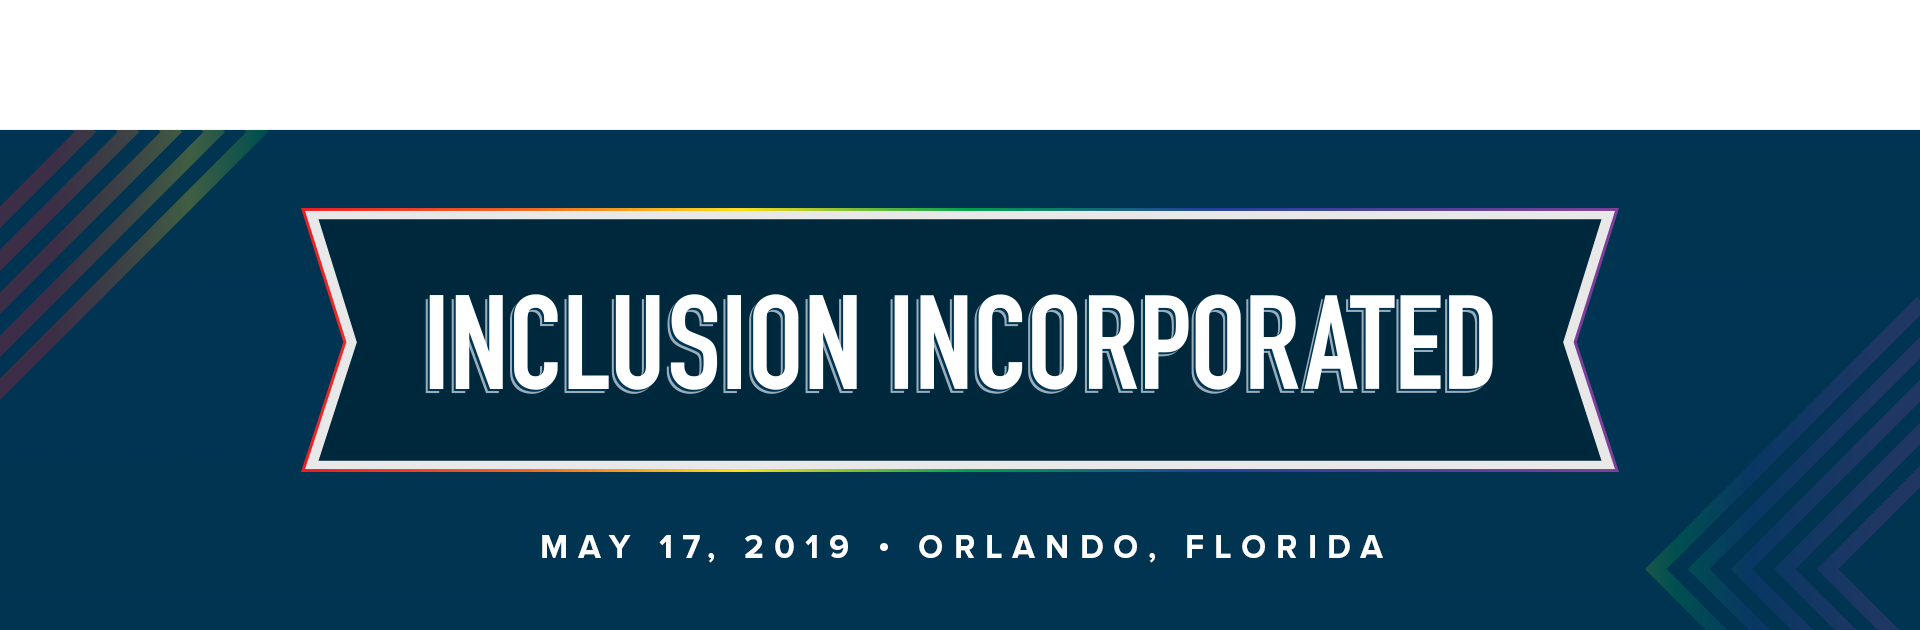 Inclusion Incorporated: Florida Regional Forum